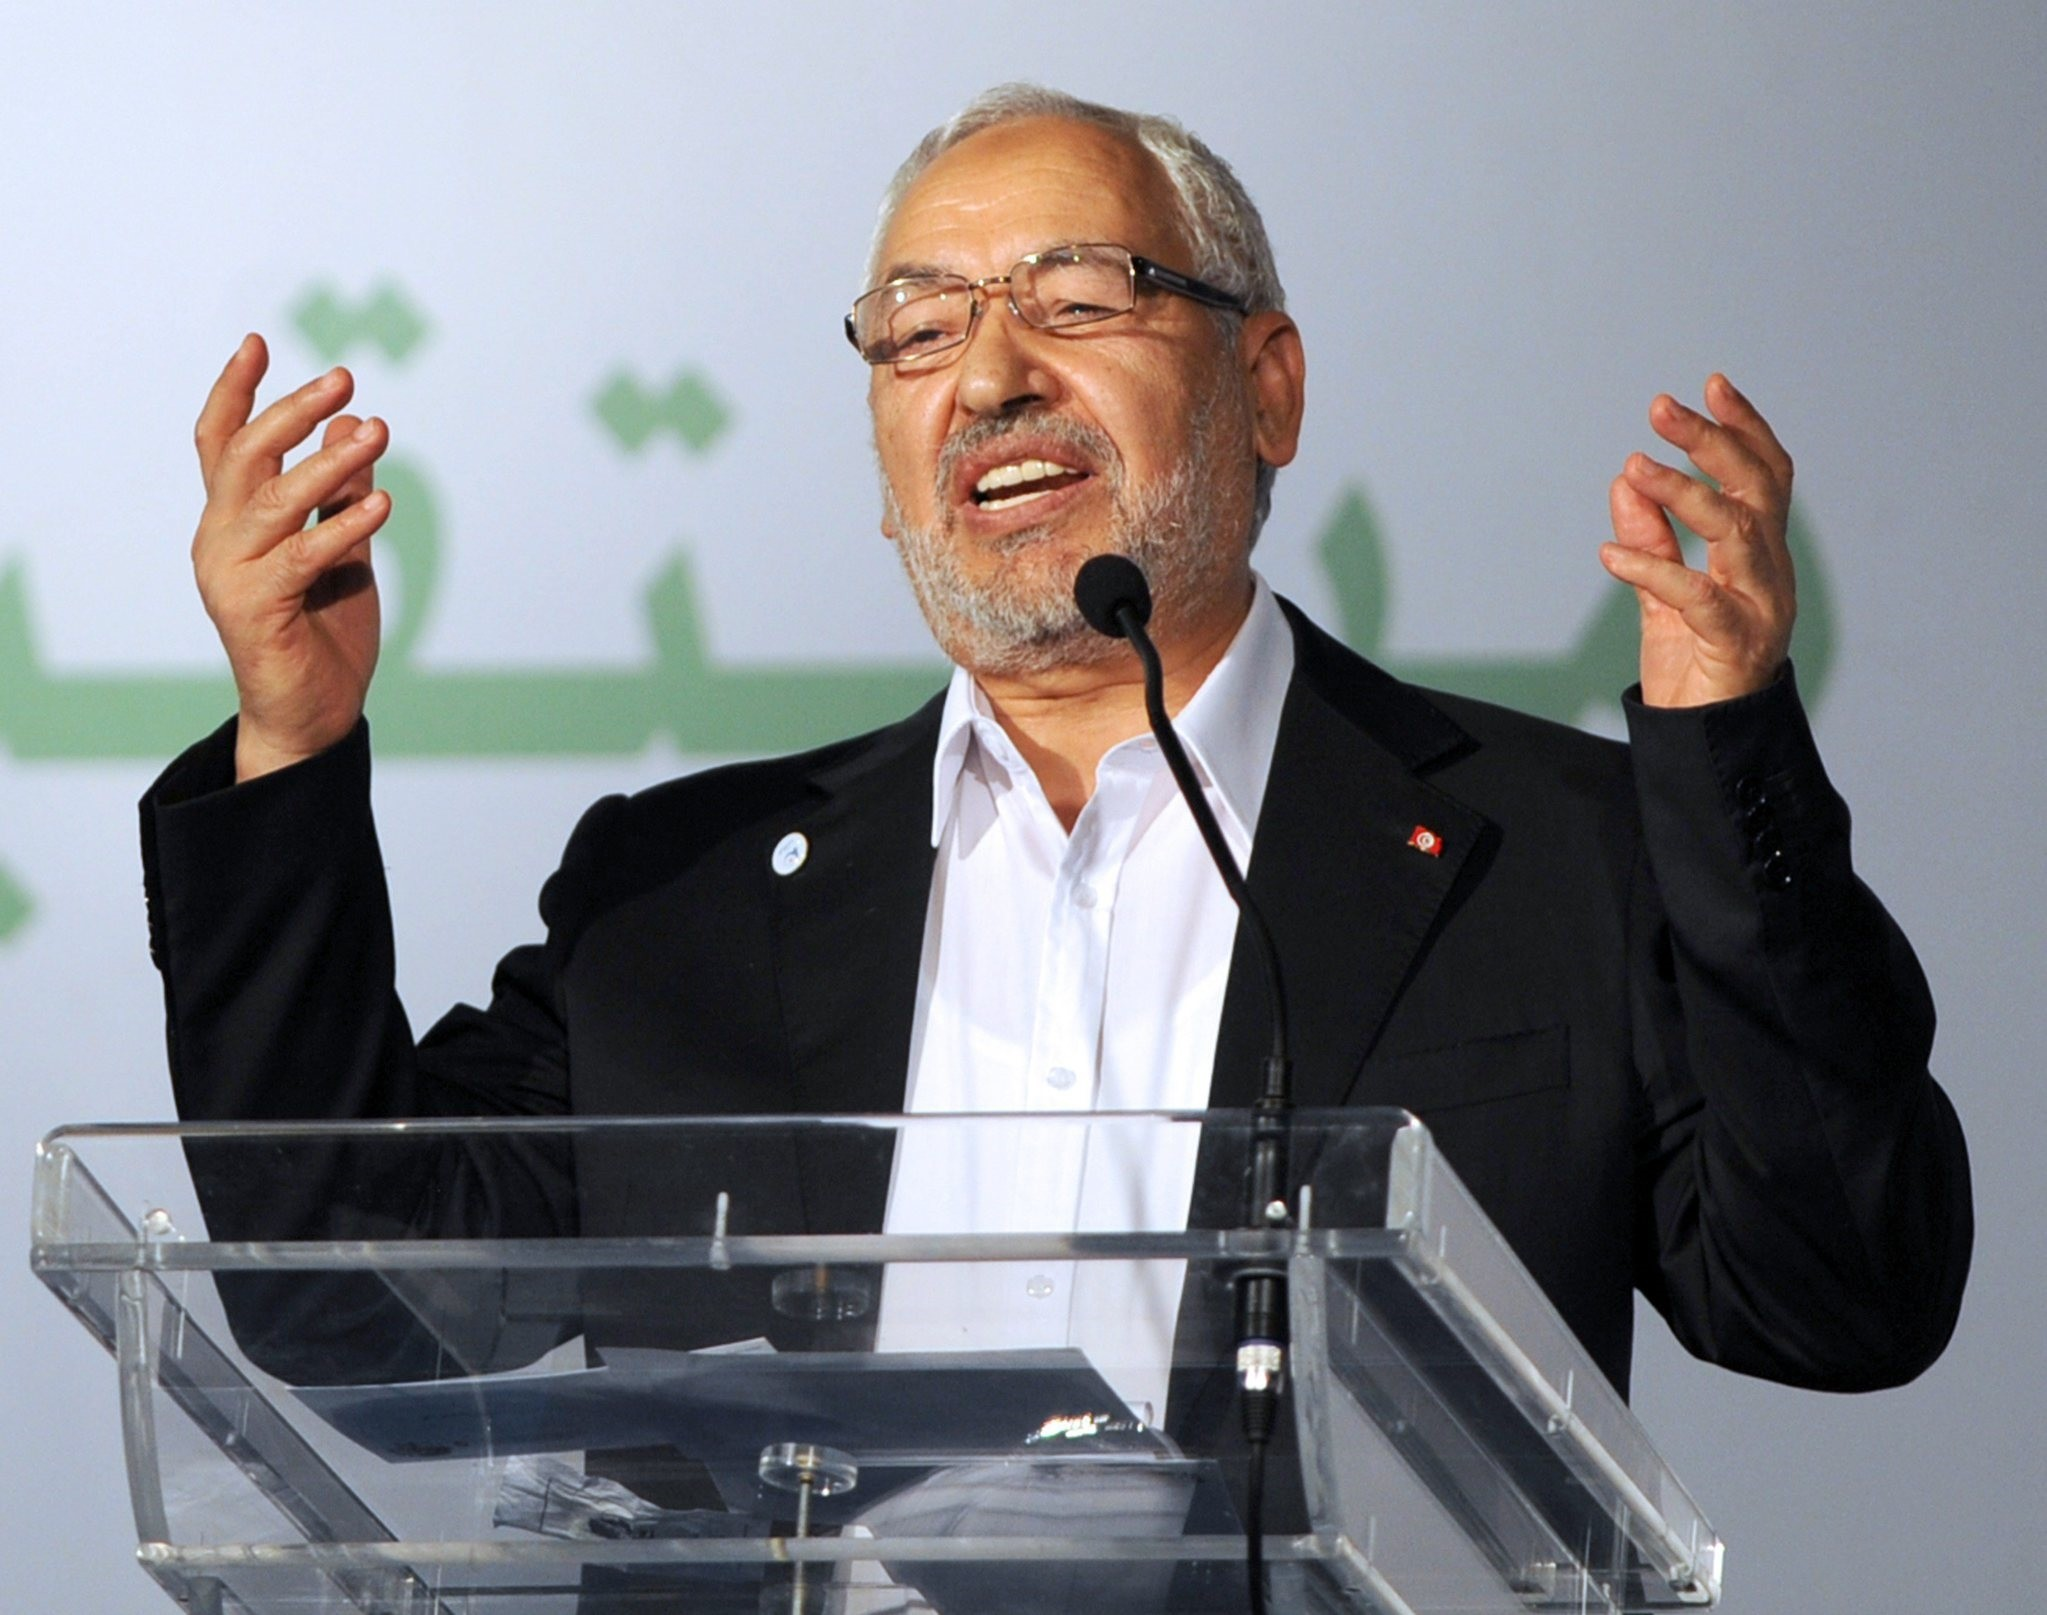 The head of Tunisia's ruling Islamist party Ennahda, Rached Ghannouchi gestures at the launch of its first congress at home in 24 years, on July 12, 2012 in Tunis. (AFP Photo)